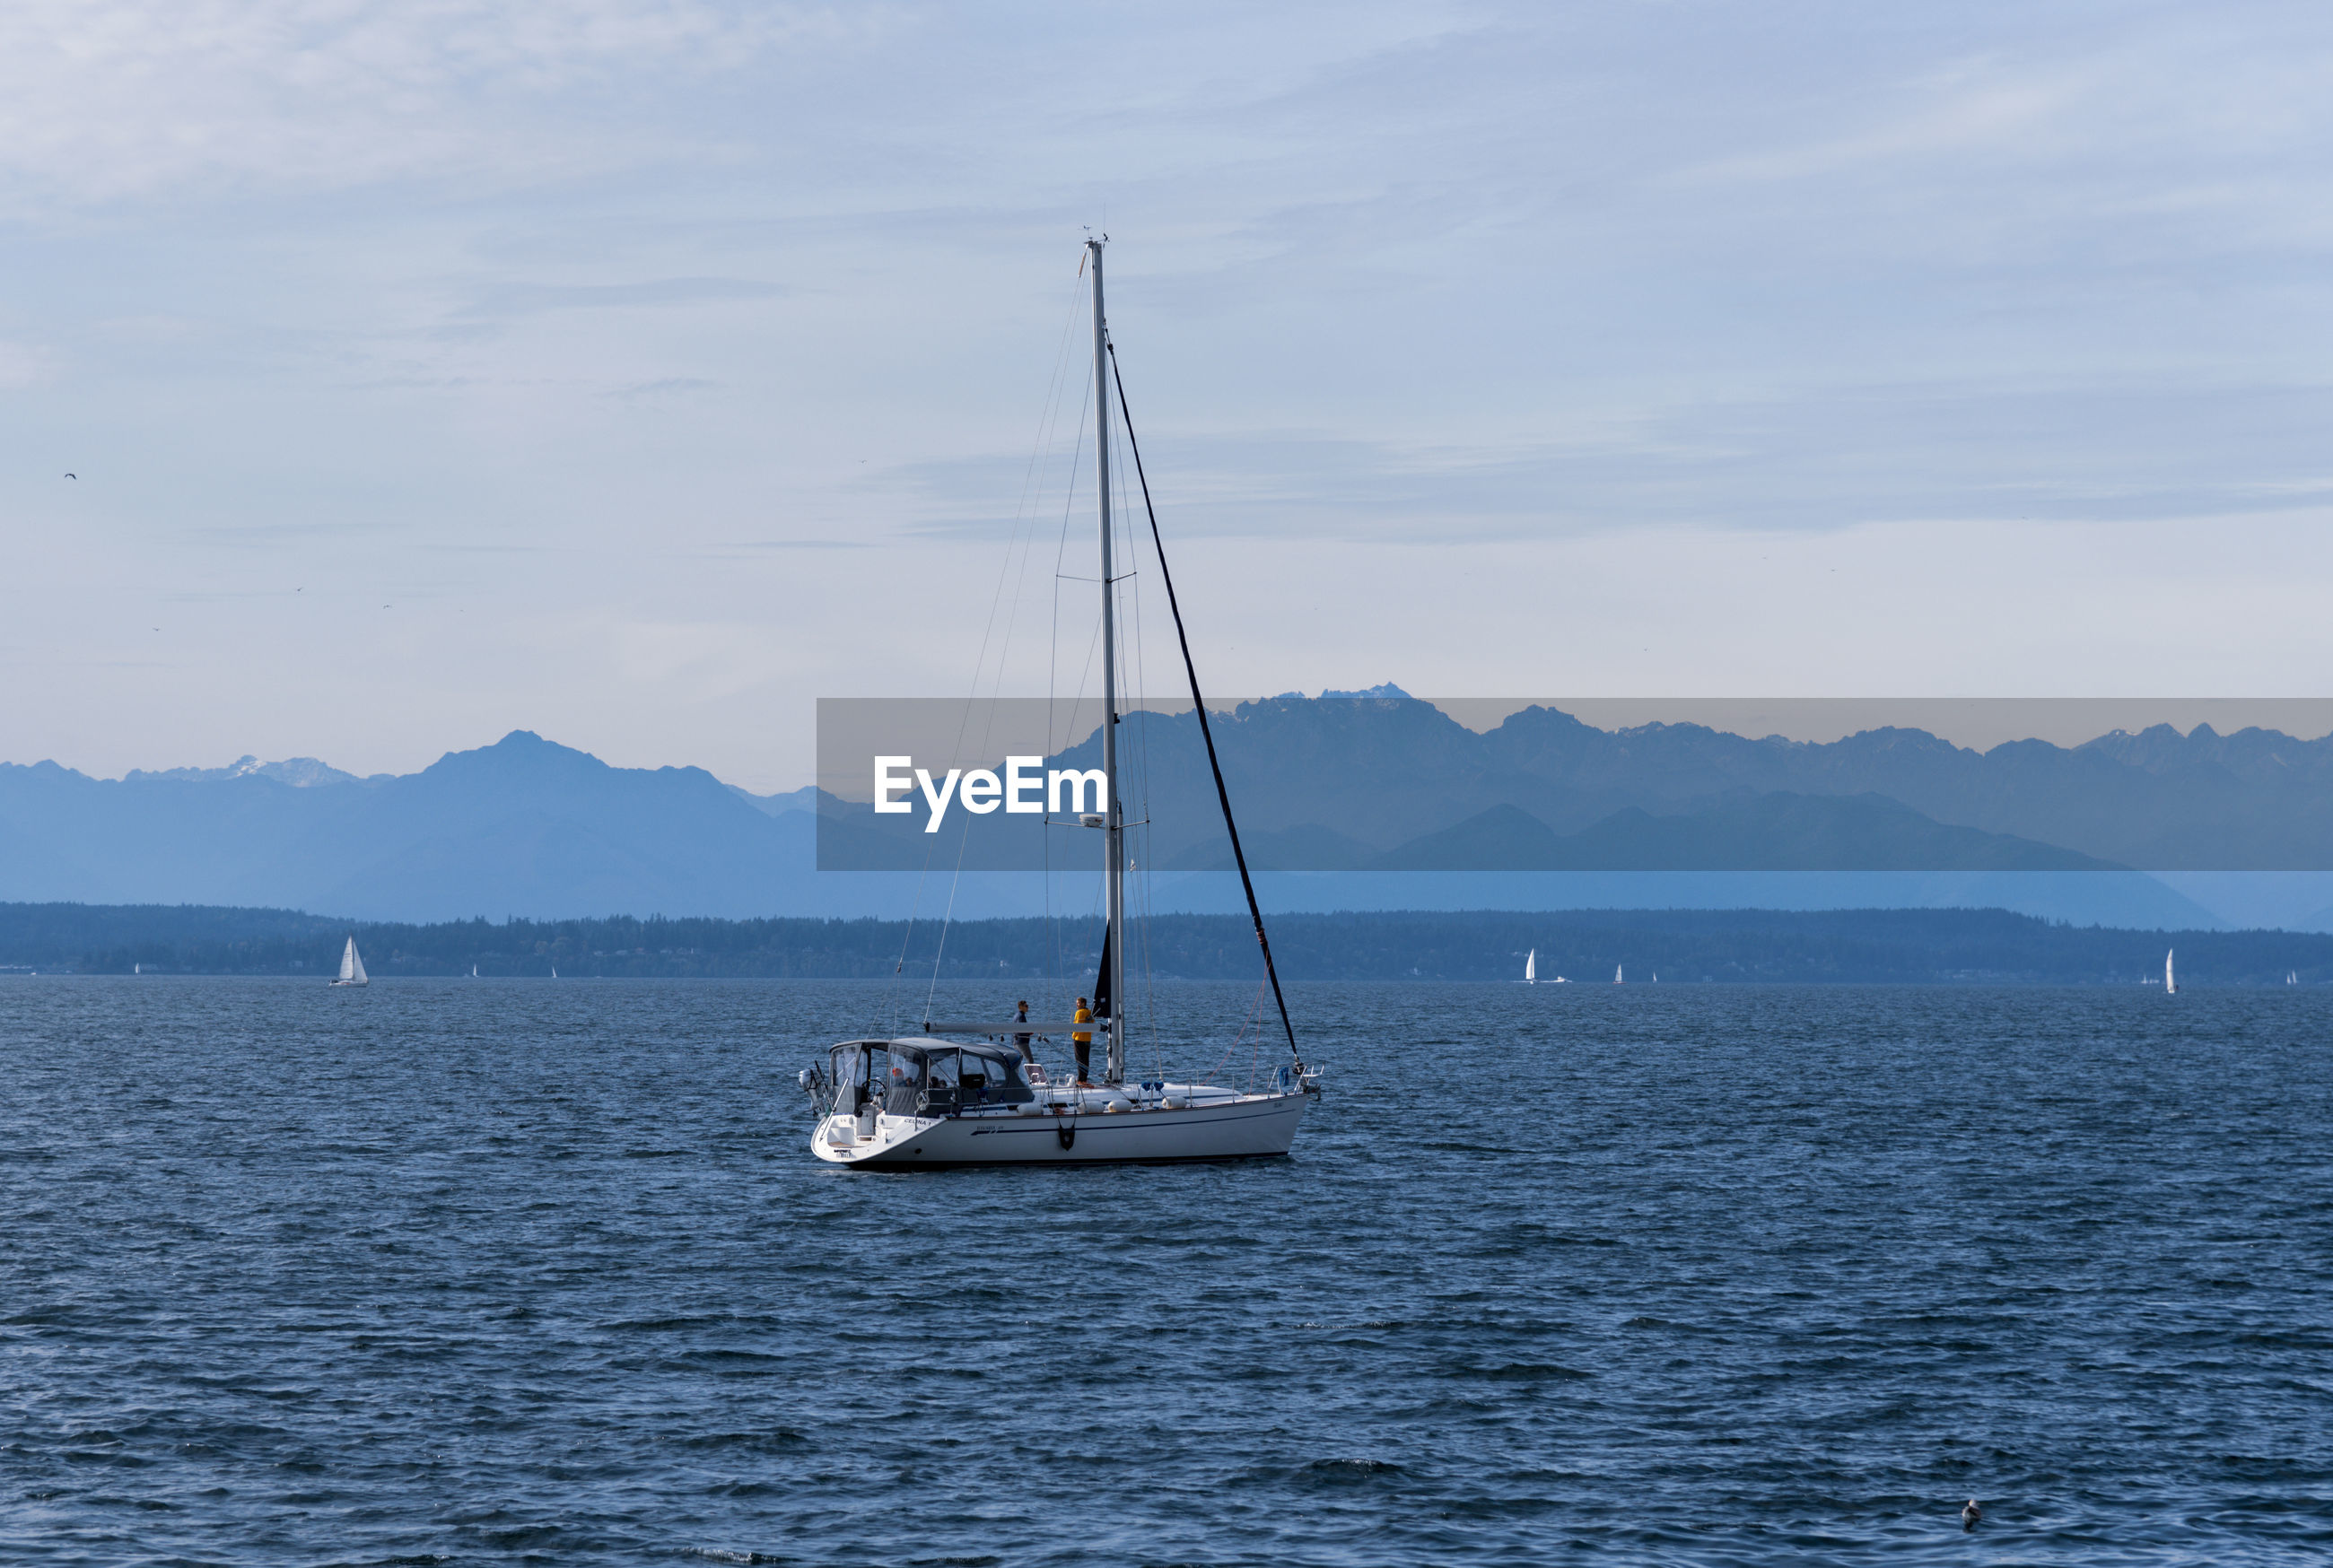 Sailboat off shore mid day sun with olympic mountains and people standing on deck.